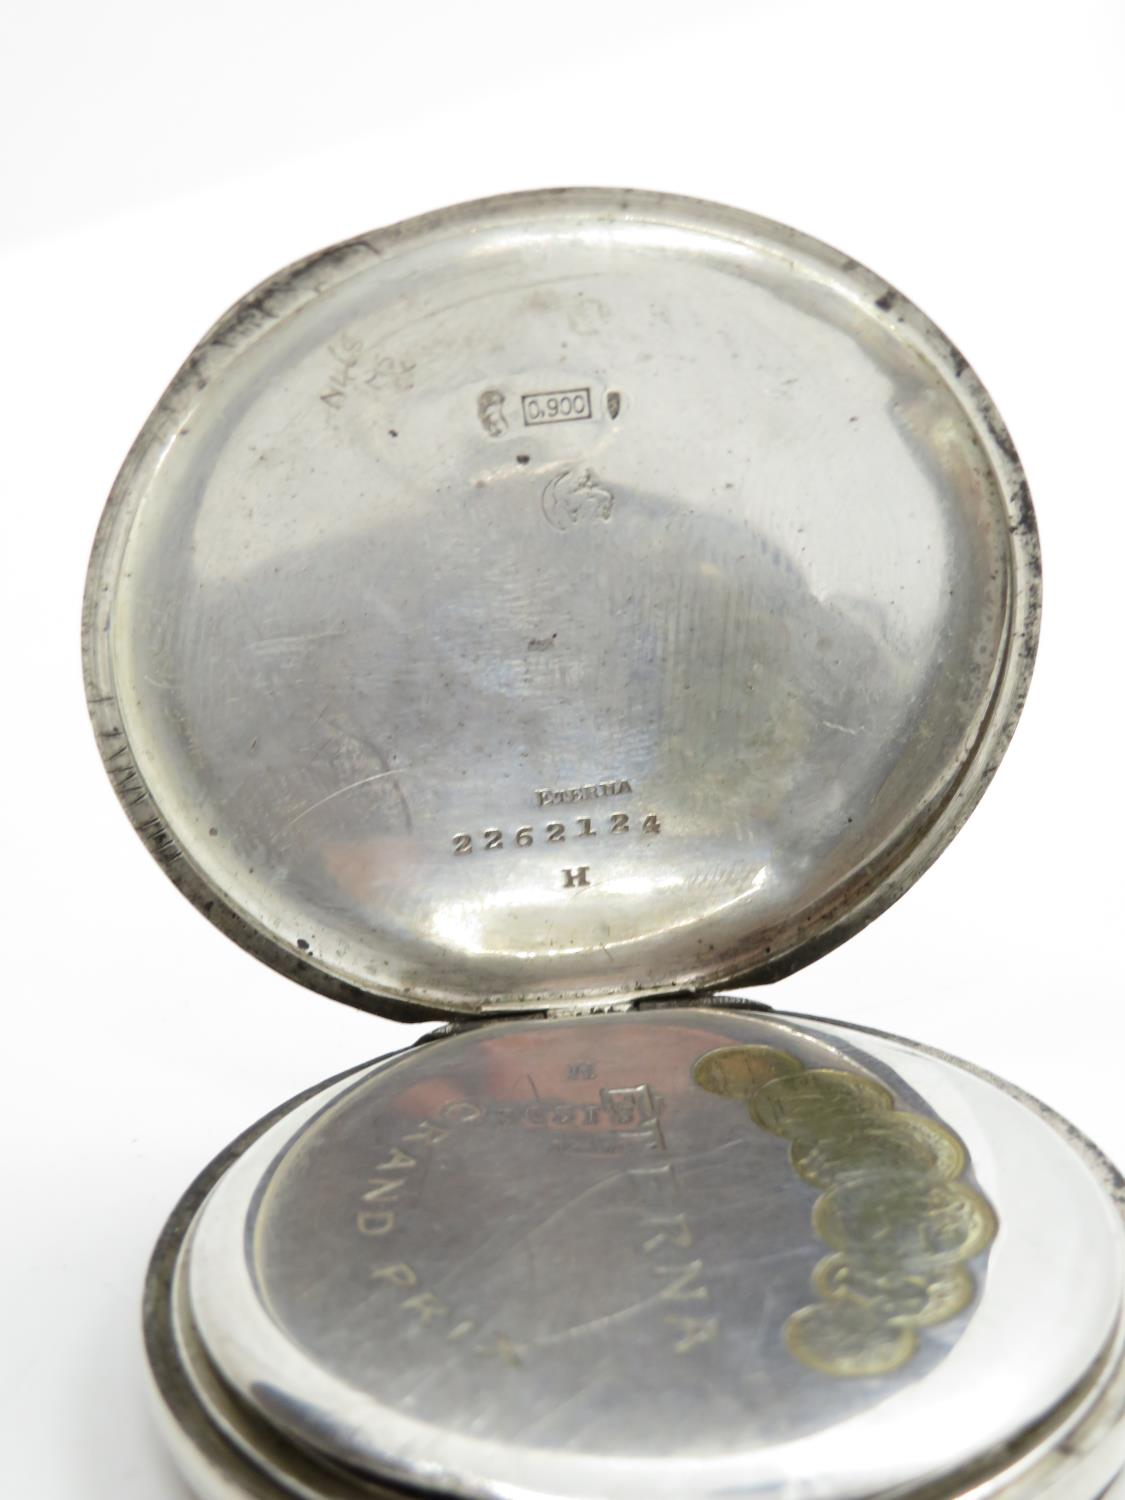 900 silver cased eterna gents vintage open face pocket watch hand wind / 16 jewels - Image 4 of 7